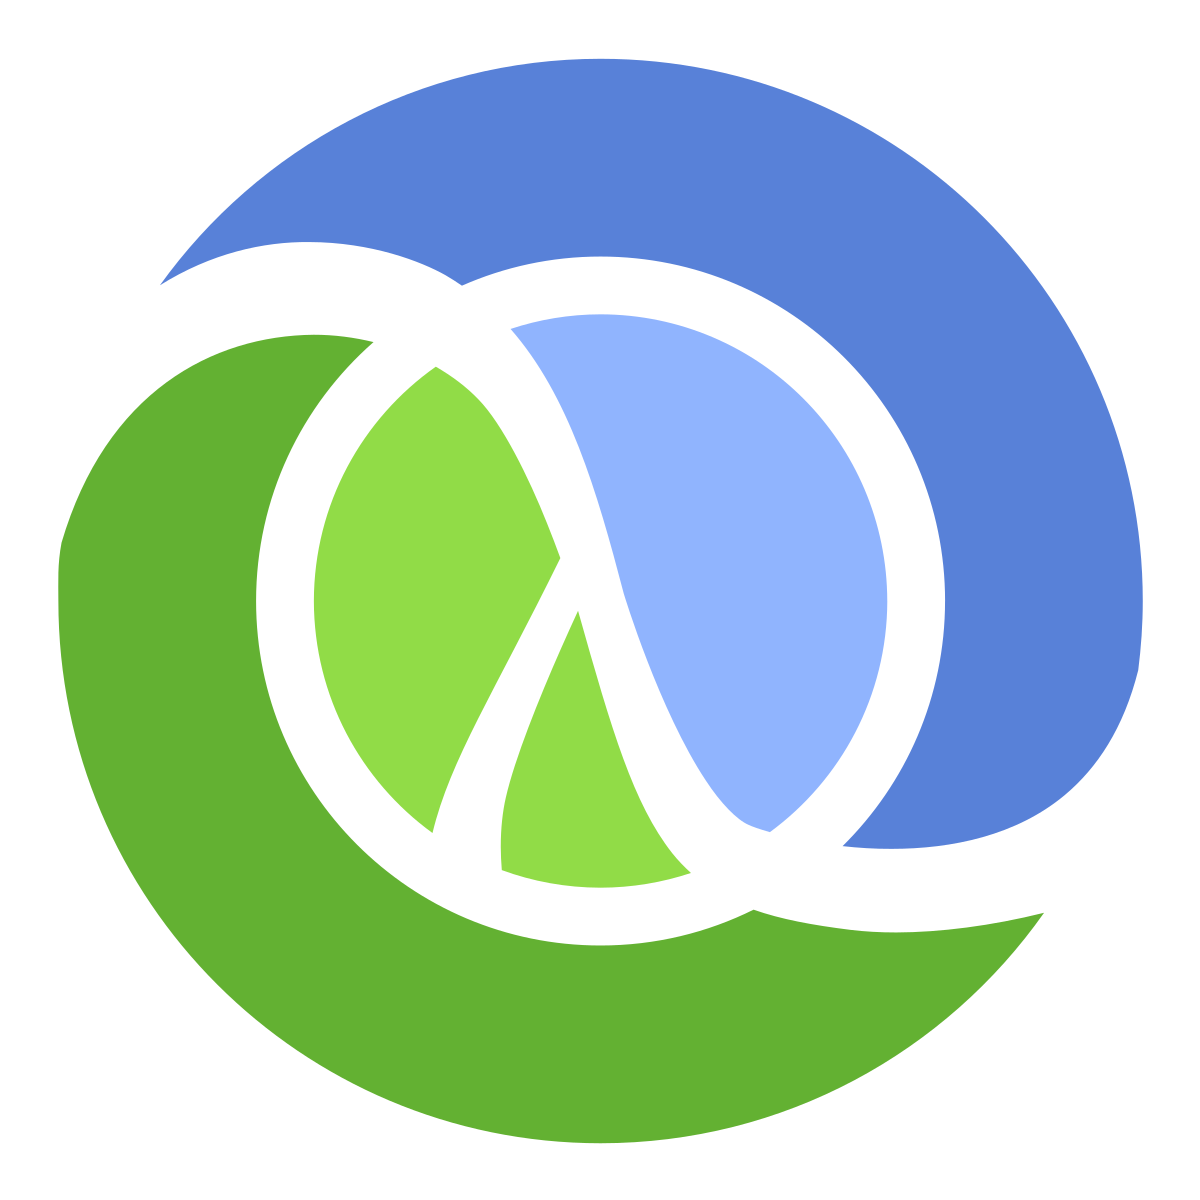 Referentially transparent. Clojure functional programming hacker